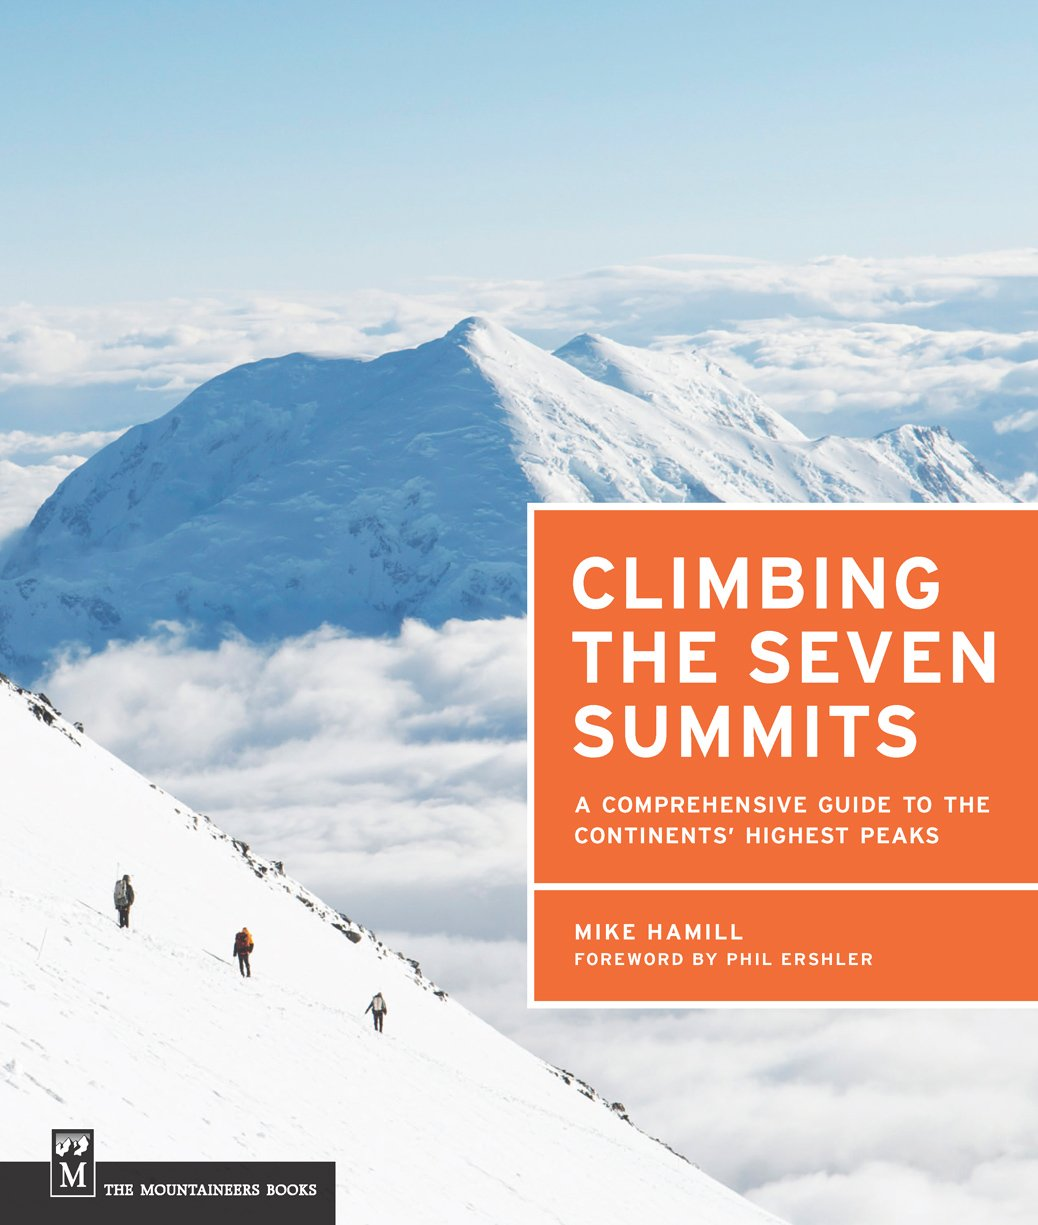 Download Climbing The Seven Summits: A Comprehensive Guide To The Continents' Highest Peaks 